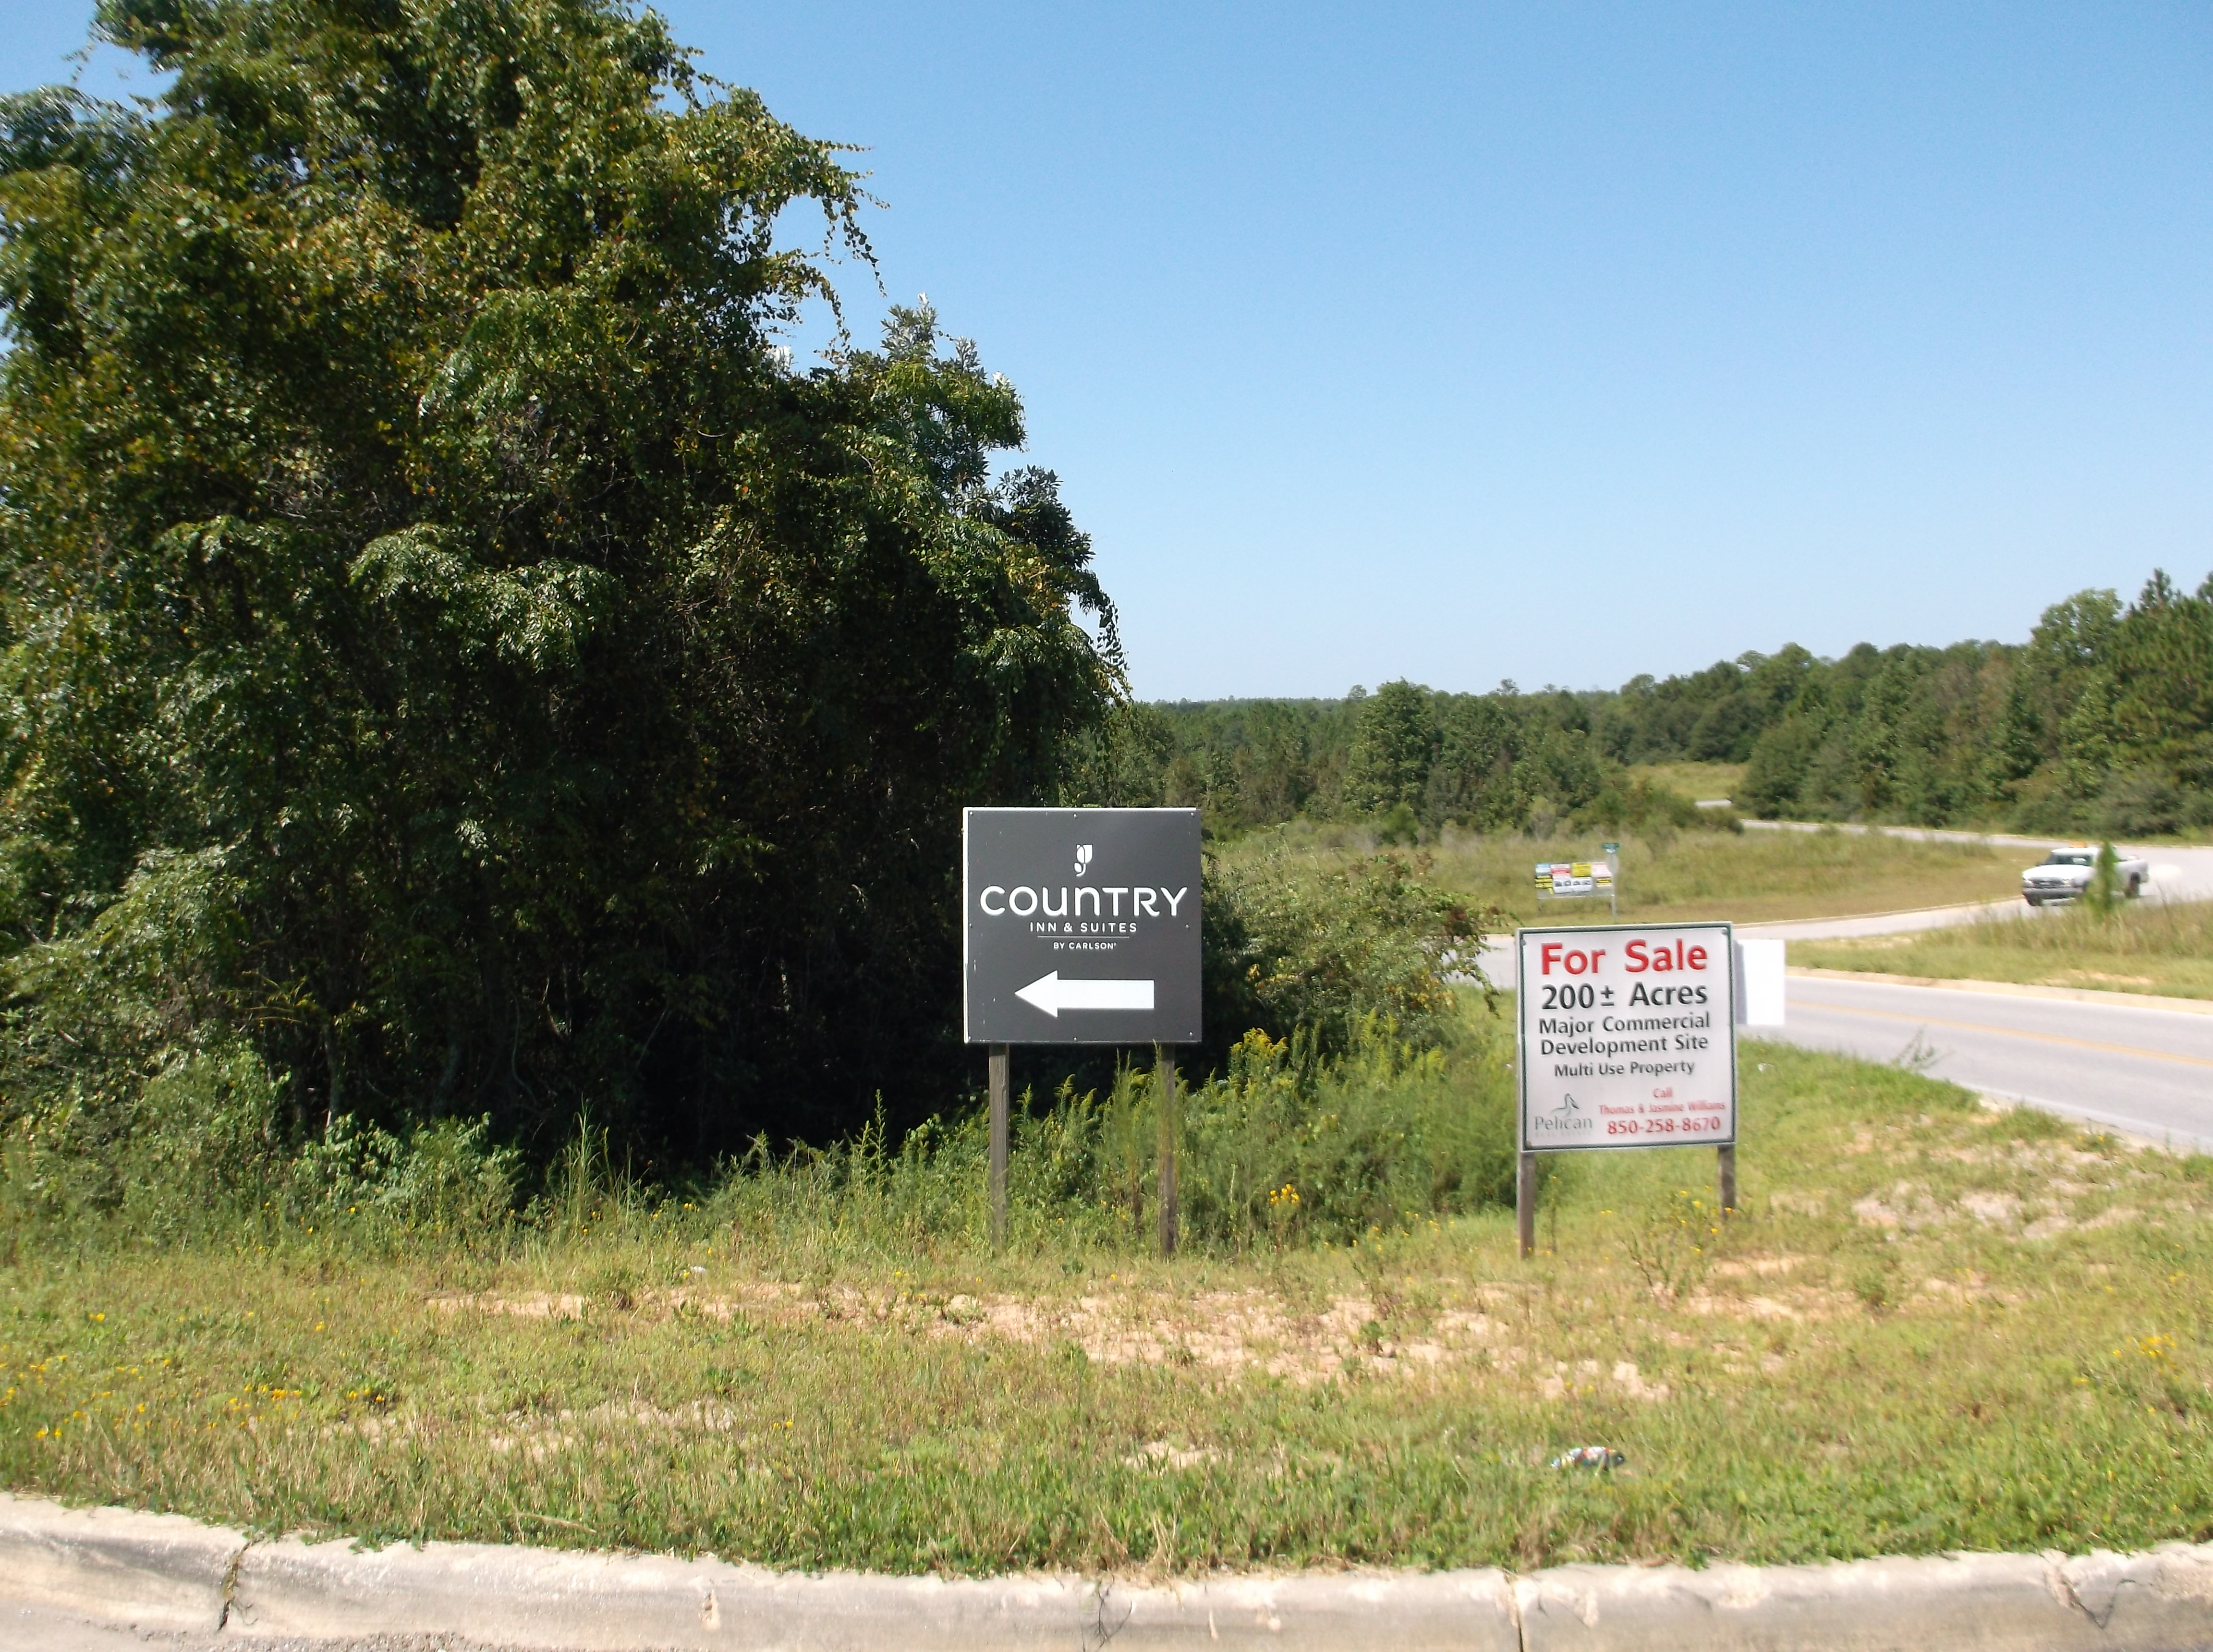 Over 200 acres of prime commercial land in Crestview